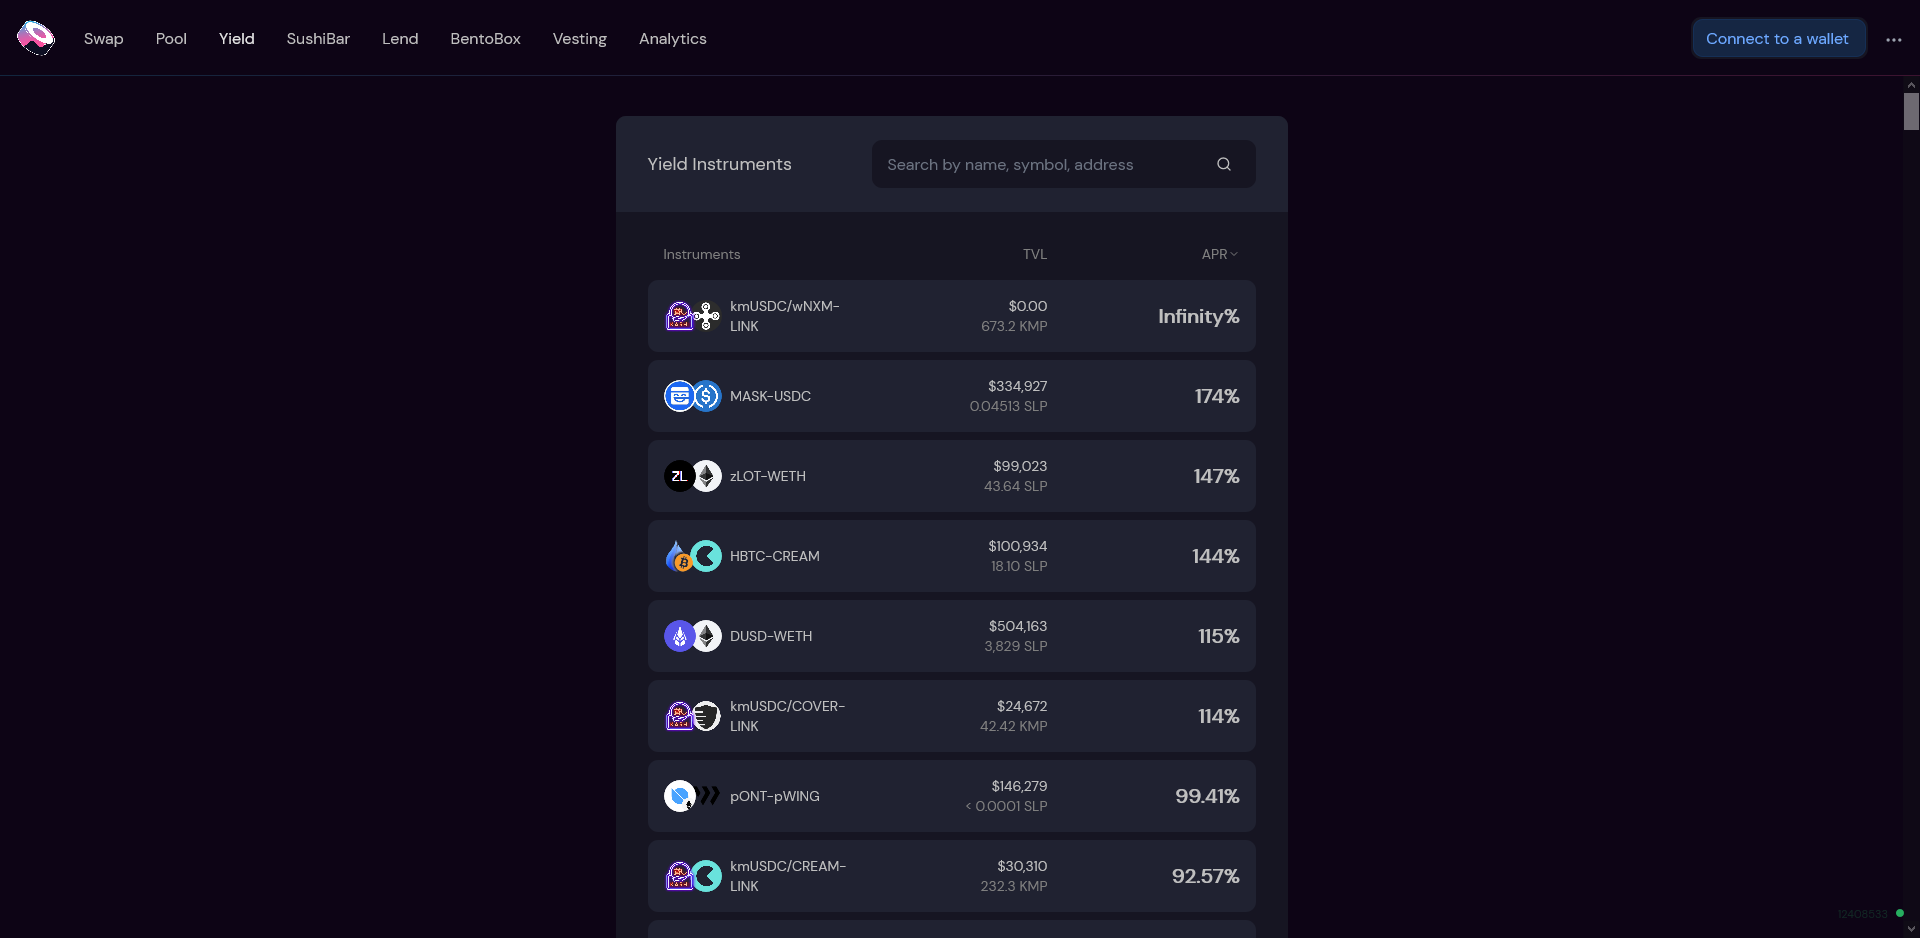 [Which DEX has the Best Liquidity Pools?]